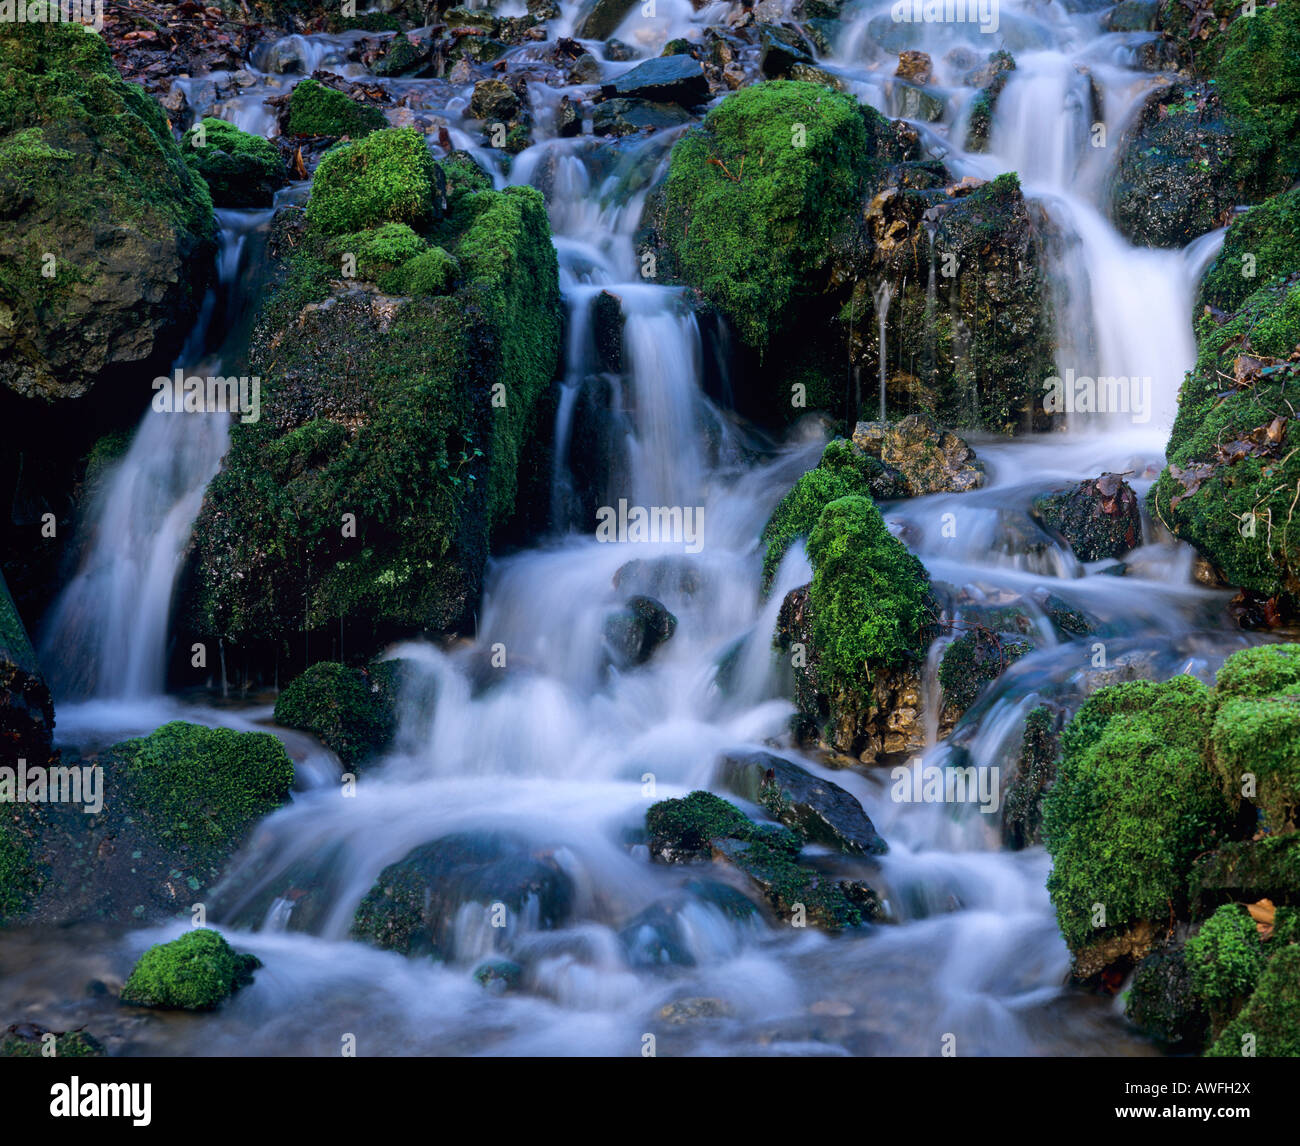 Moss-covered rocks in a forest stream, North Rhine-Westphalia, Germany, Europe Stock Photo